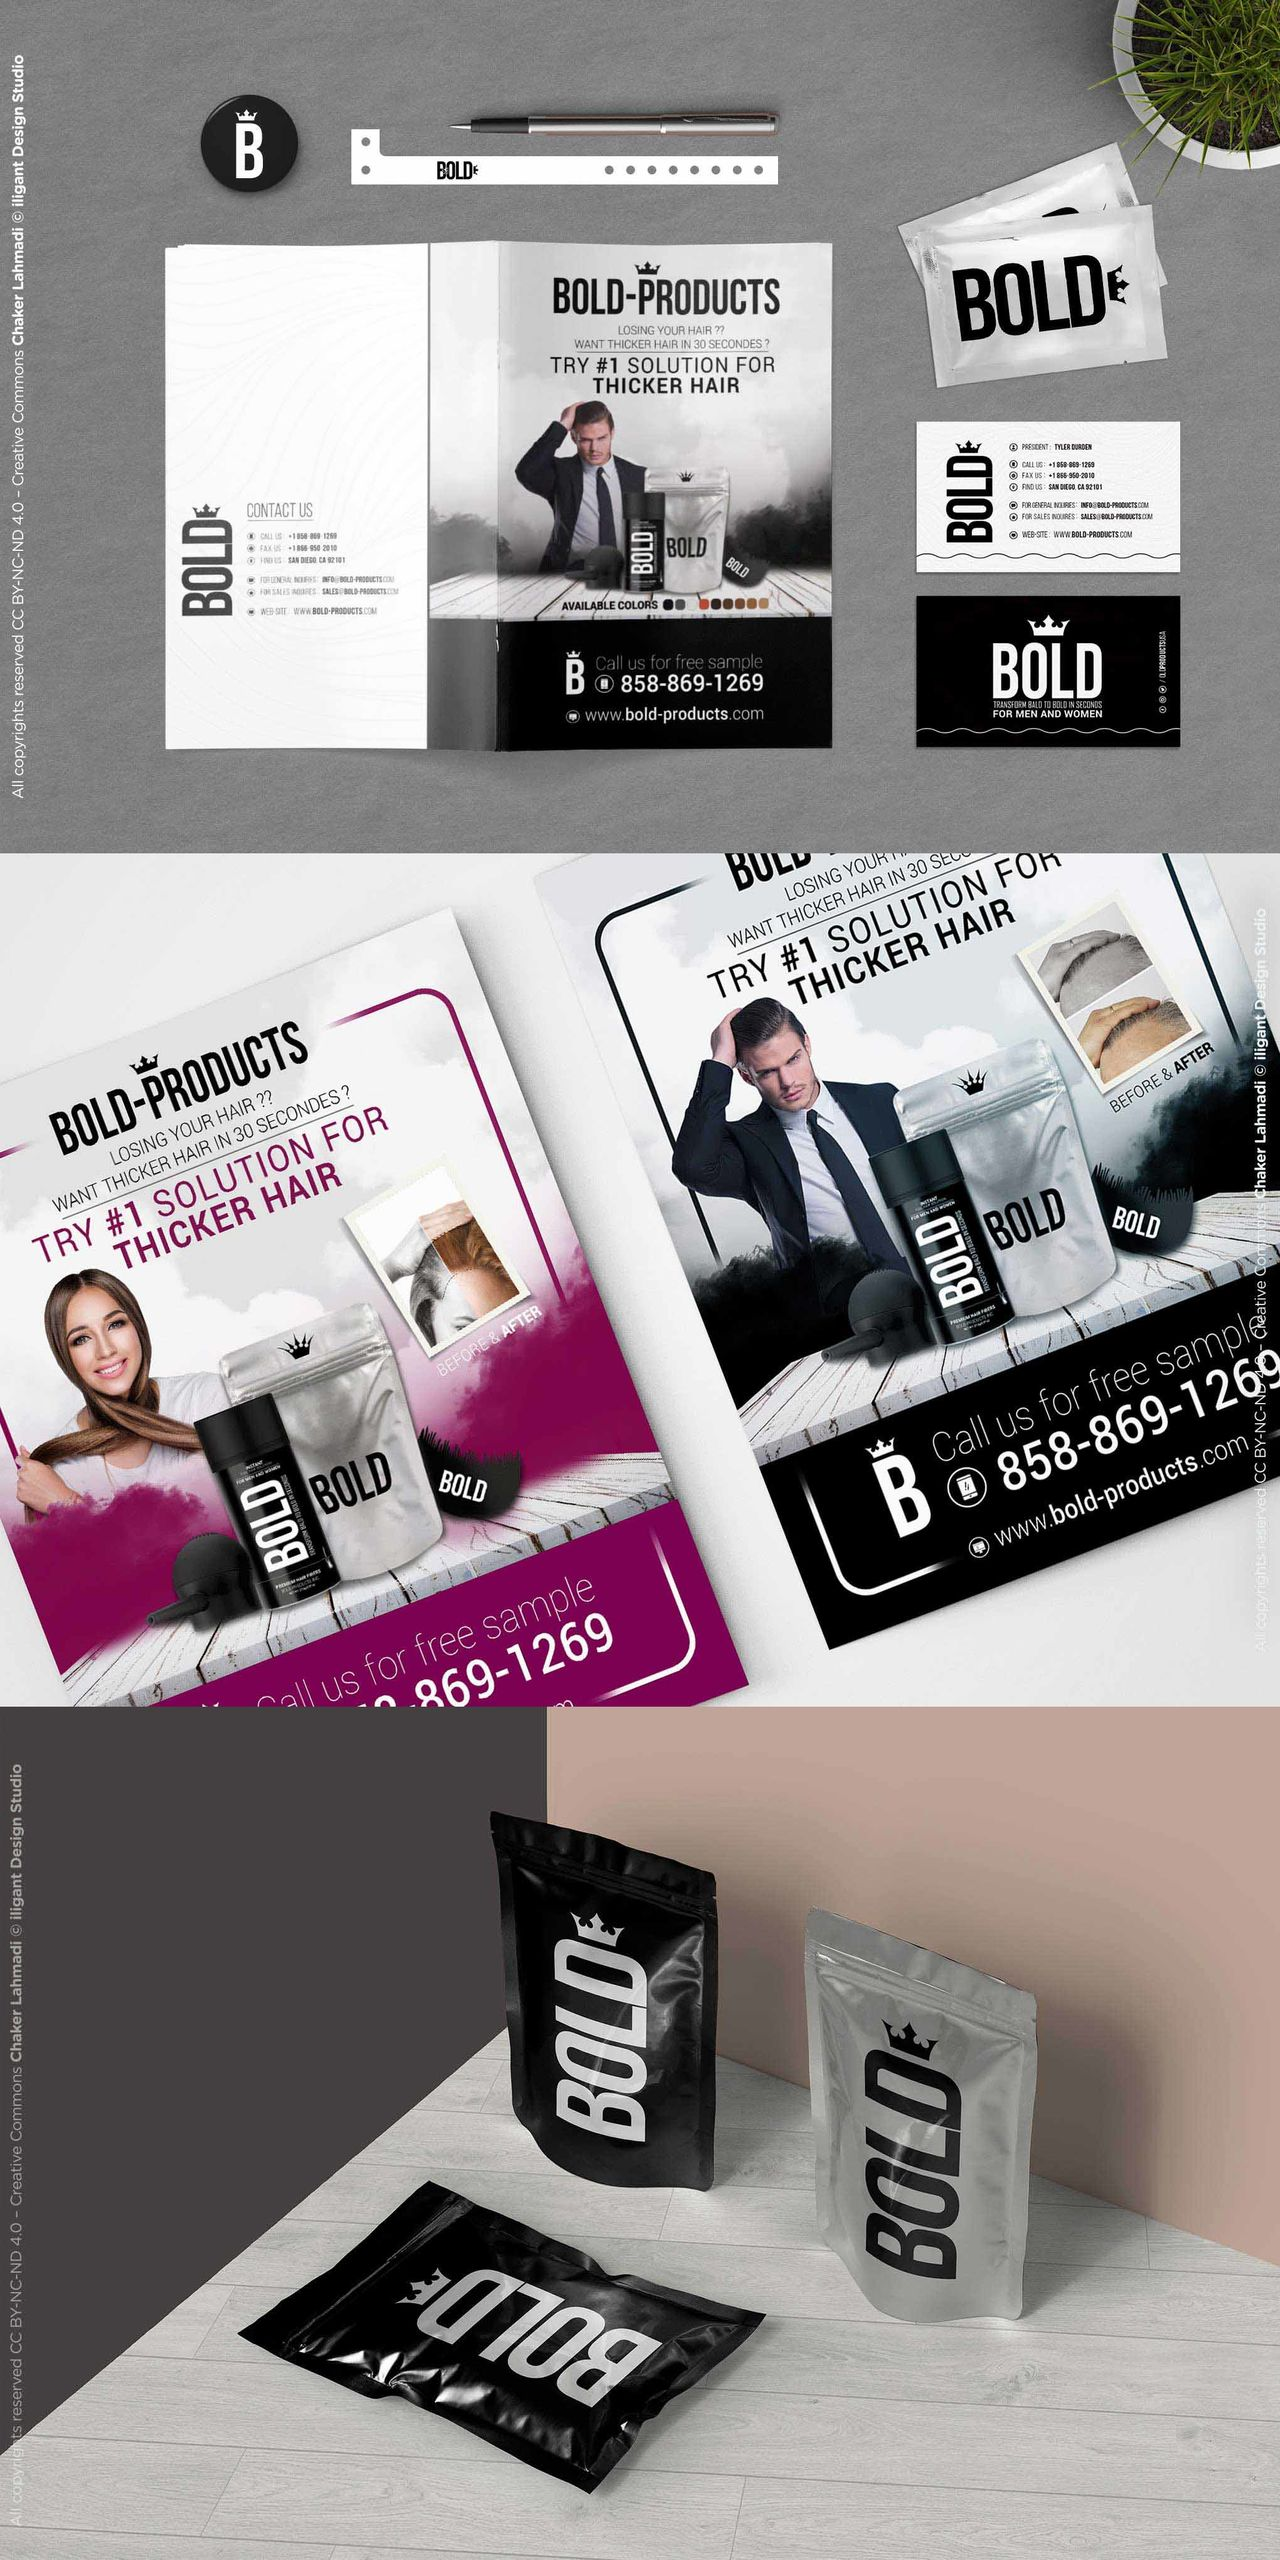 Full design for bold products